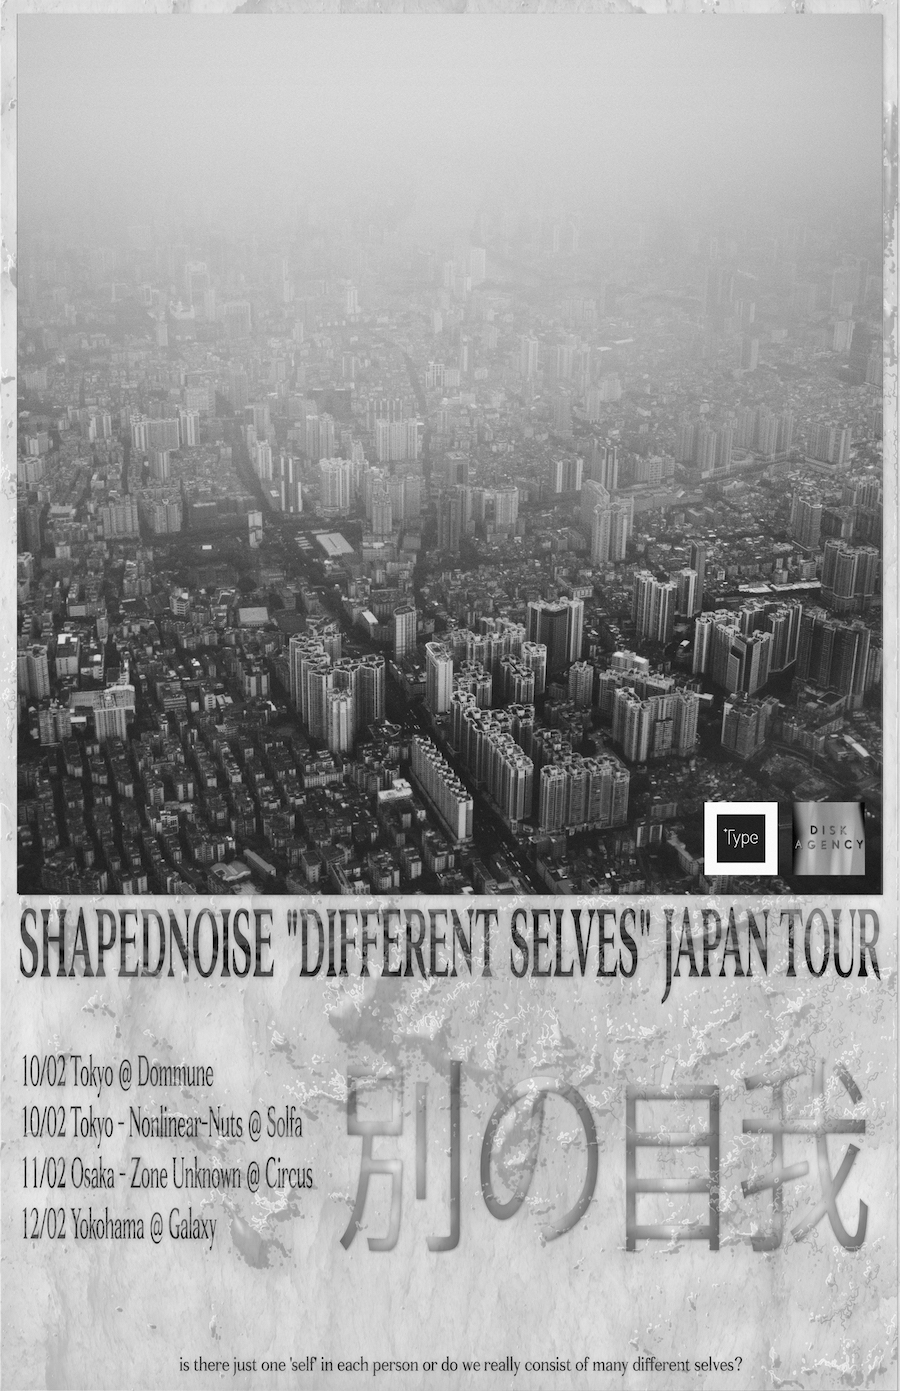 Shapednoise japanese tour